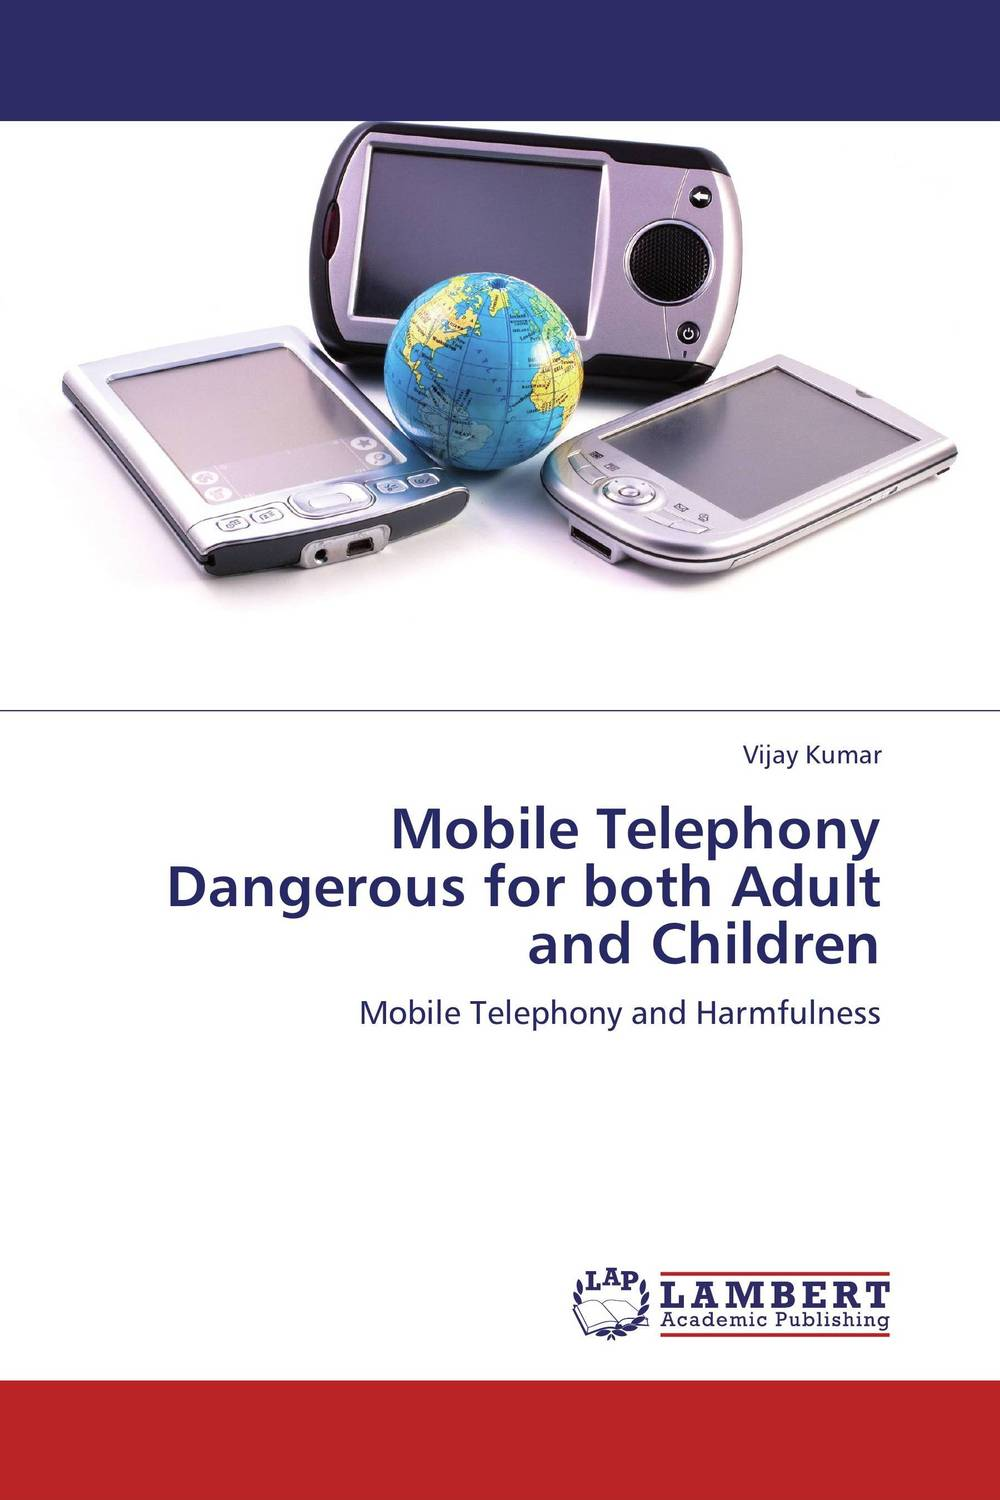 Mobile Telephony Dangerous for both Adult and Children driven to distraction